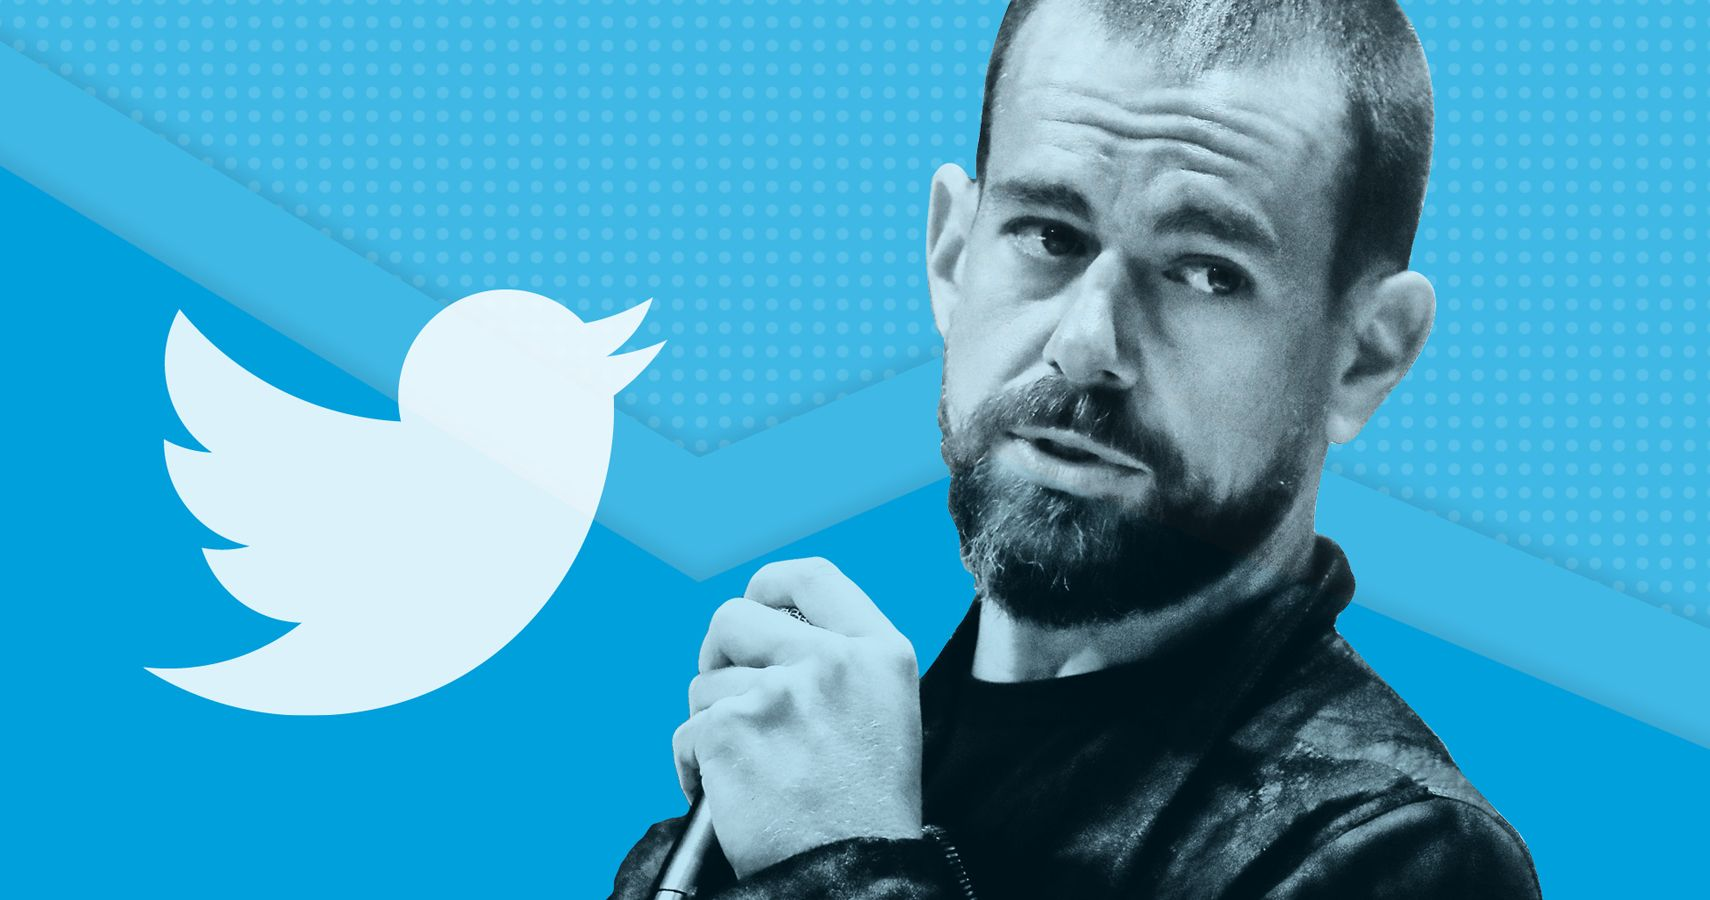 Twitter CEO Jack Dorsey Has His Own Twitter Account Hacked